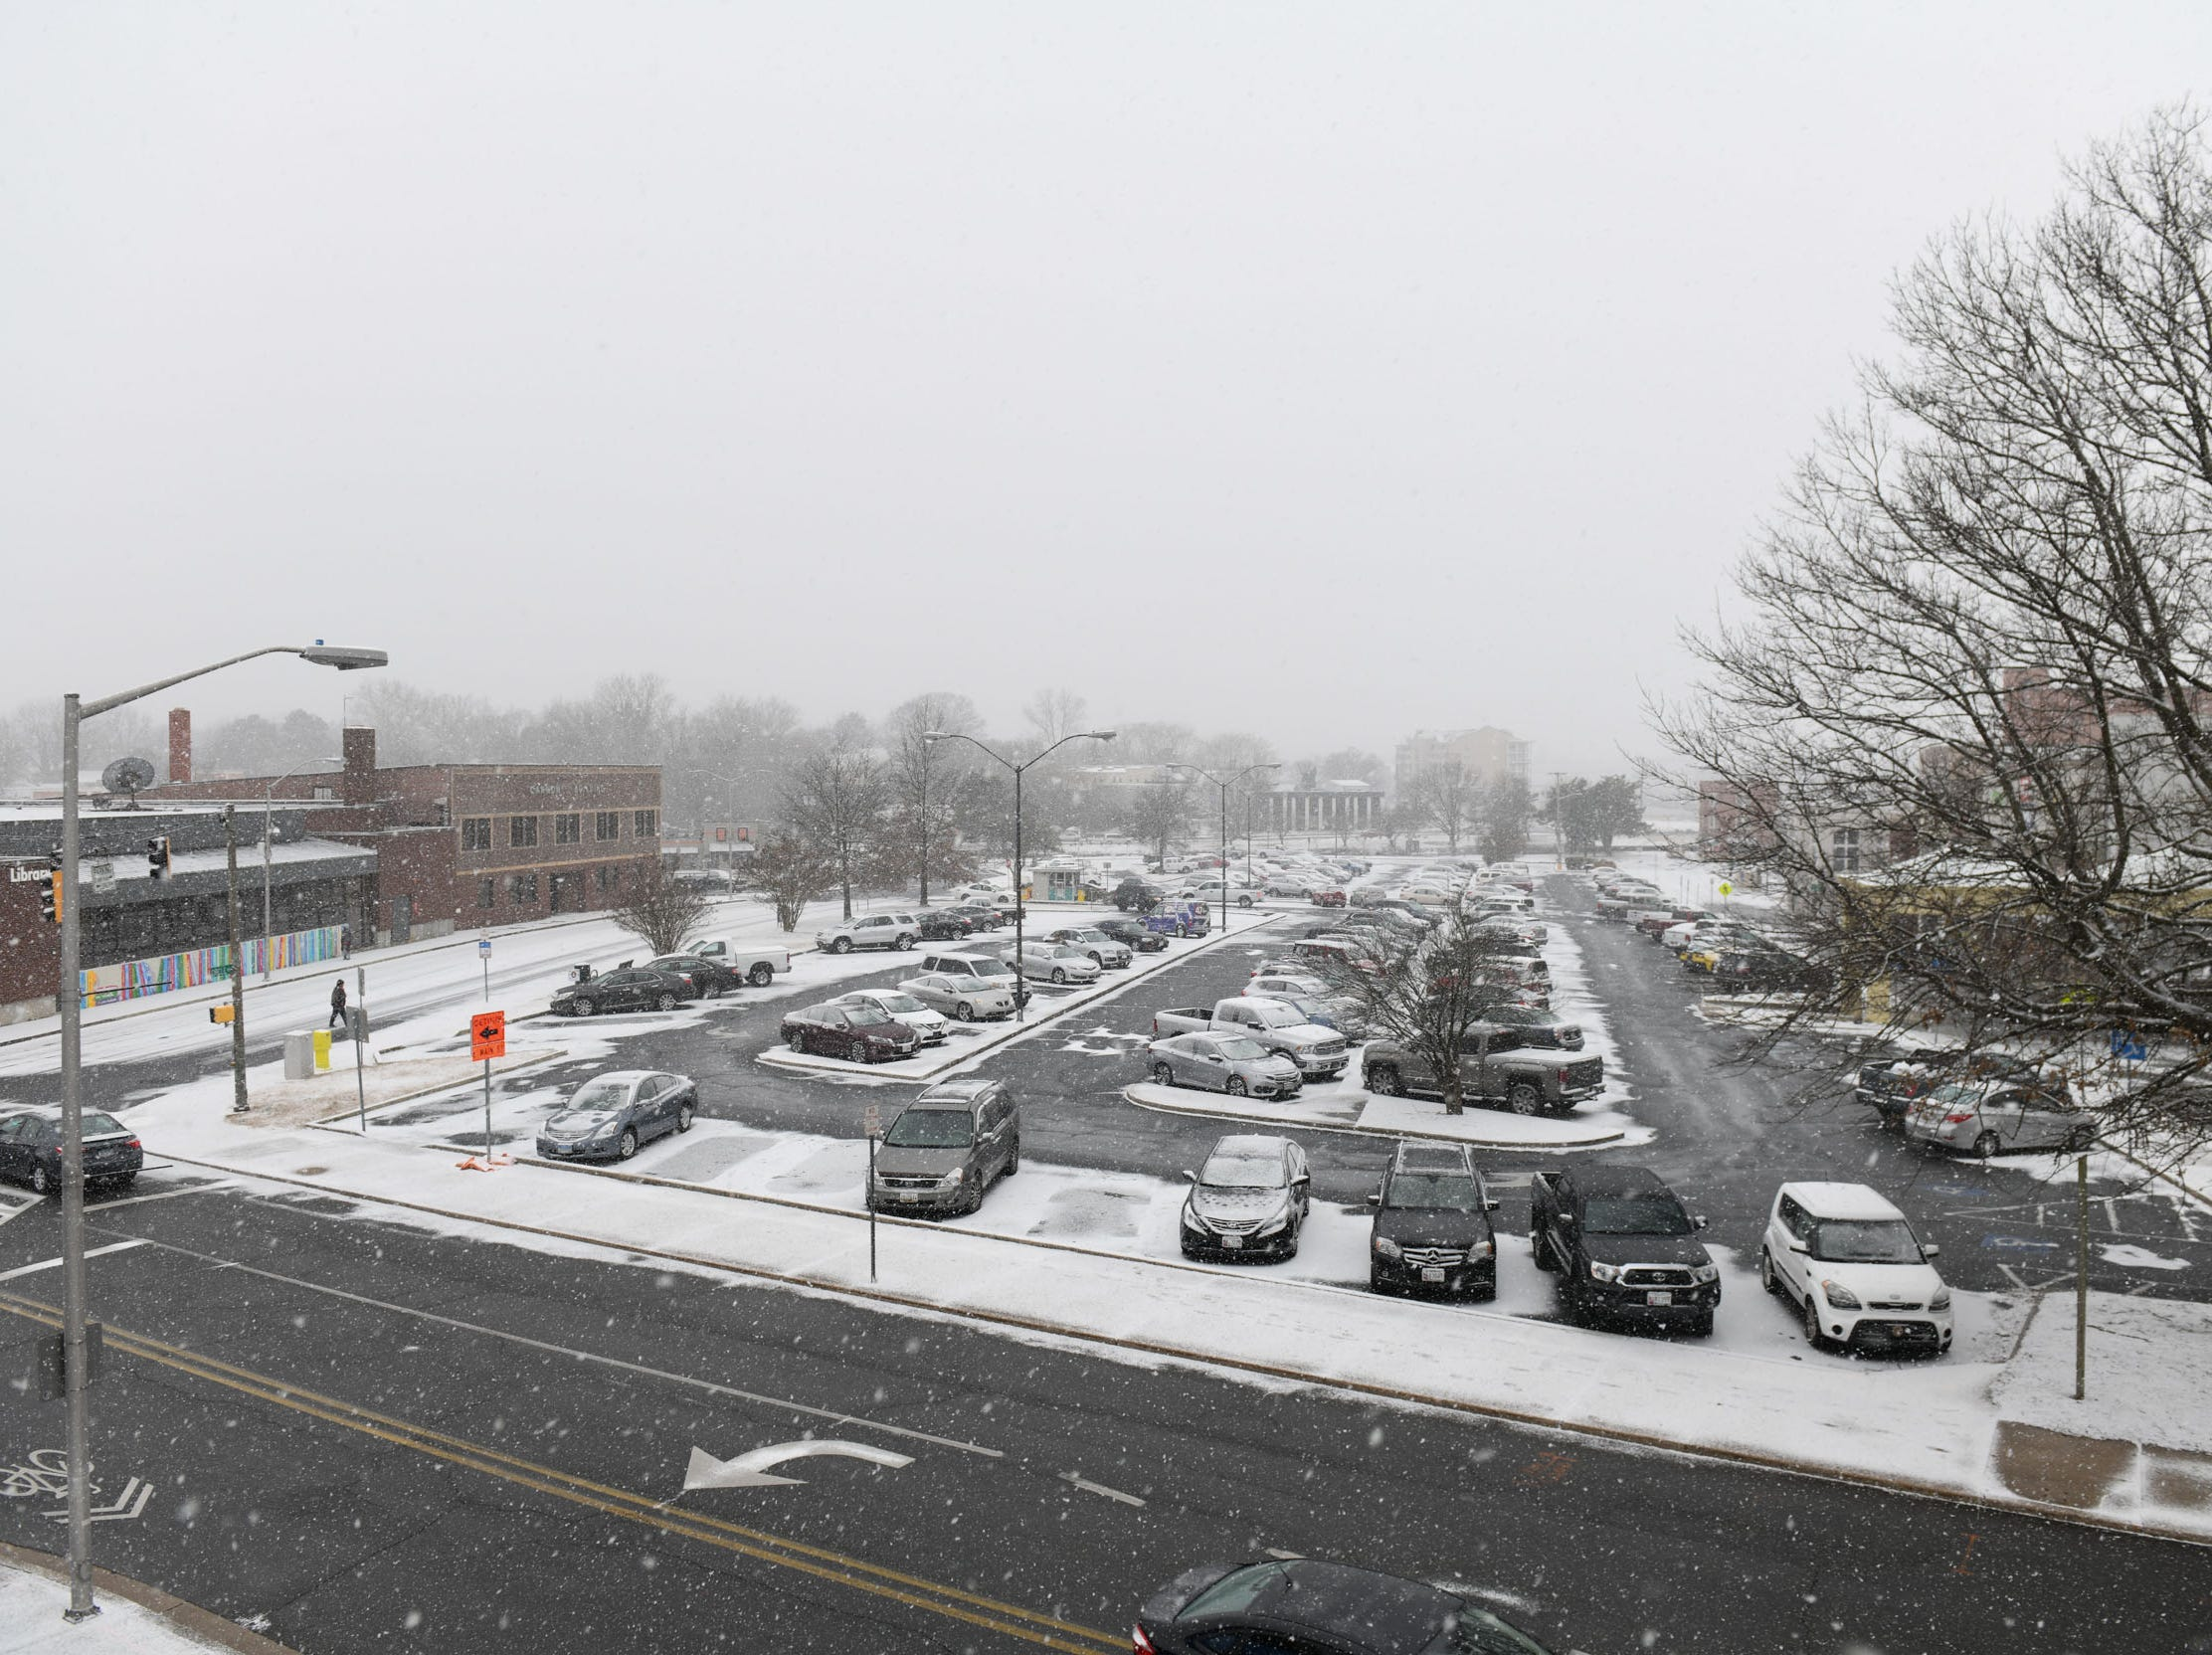 A snowy view of Downtown Salisbury from the top of the parking garage as snow continues to fall on Friday, Feb. 1, 2019.